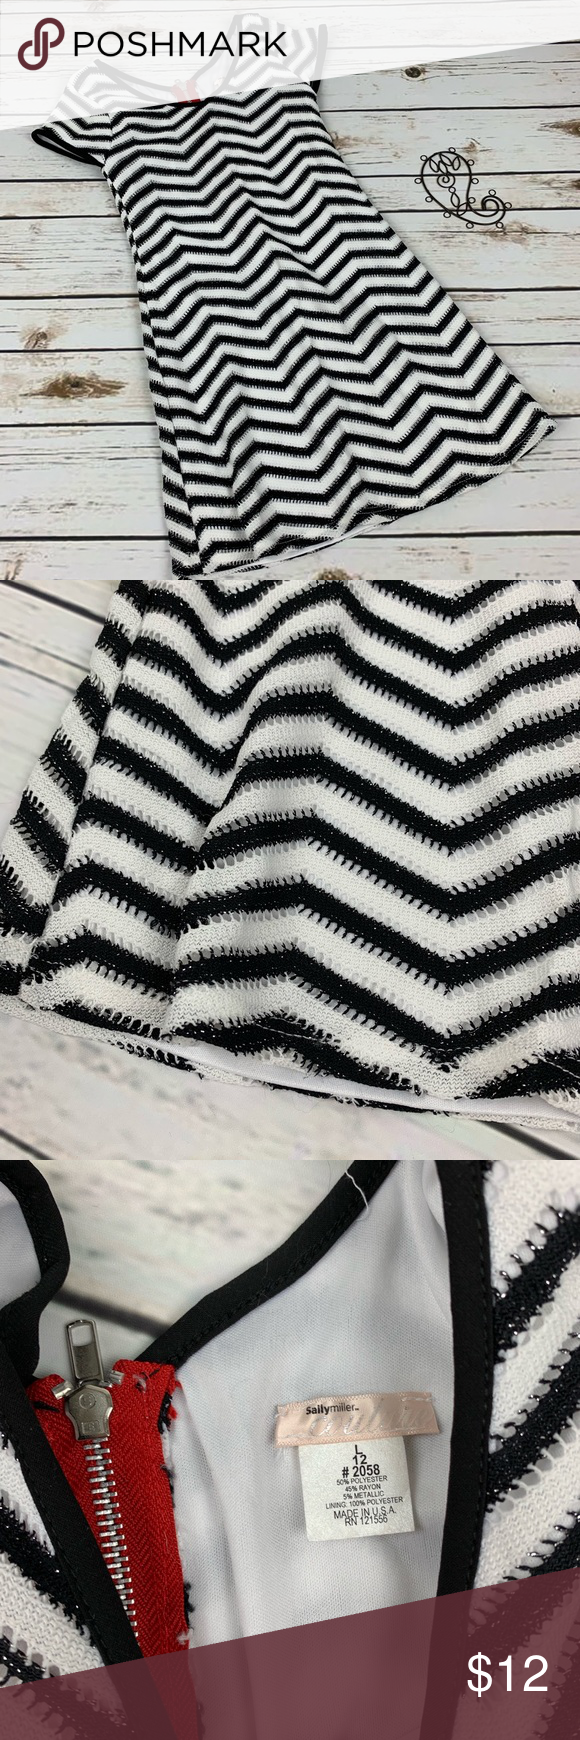 Sally Miller Couture Dress Size L 12 Chevron Lined Sally miller Couture black and white chevron dress with zipper on the back with red accent. Size 12 large EUC Sally Miller Dresses Casual #sallymiller Sally Miller Couture Dress Size L 12 Chevron Lined Sally miller Couture black and white chevron dress with zipper on the back with red accent. Size 12 large EUC Sally Miller Dresses Casual #sallymiller